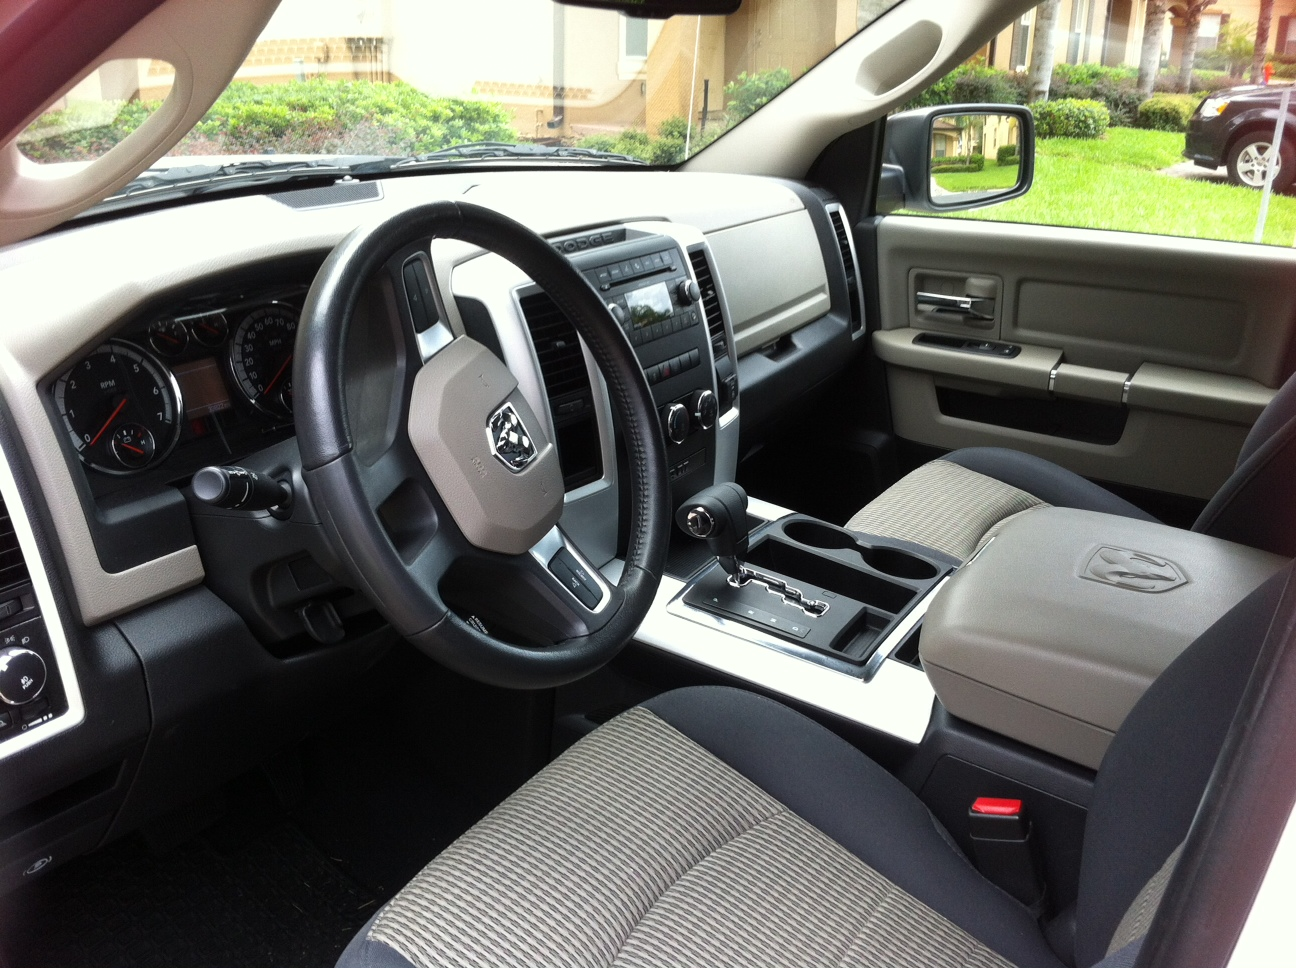 2013 dodge quad cab reviews and comments autos post. Black Bedroom Furniture Sets. Home Design Ideas